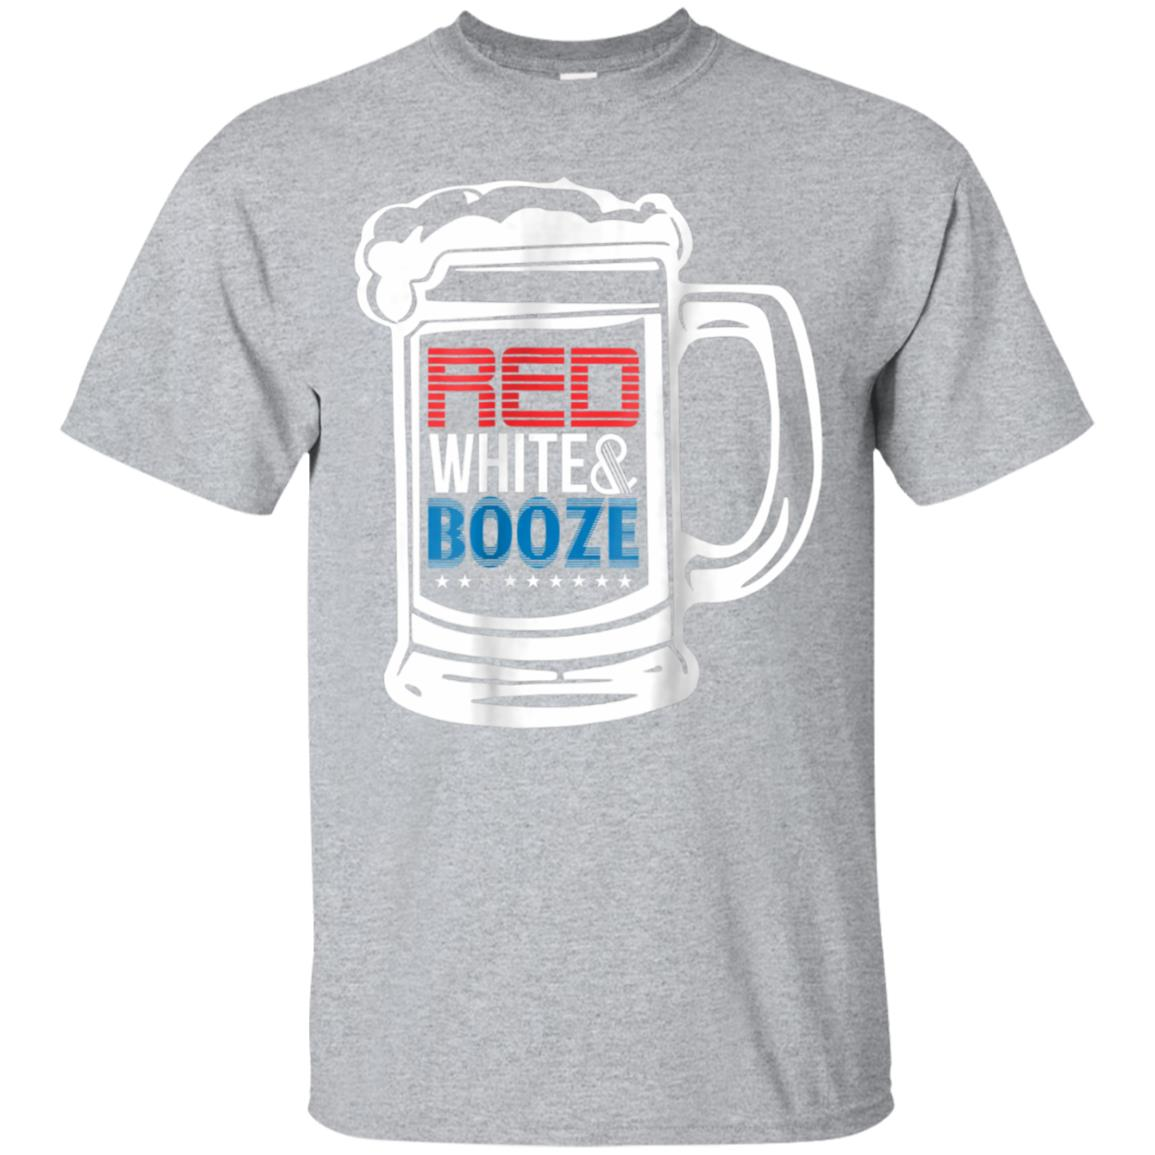 82ec3a90 Awesome 4th of july t shirt patriotic red, white, & booze gift tee -  99promocode